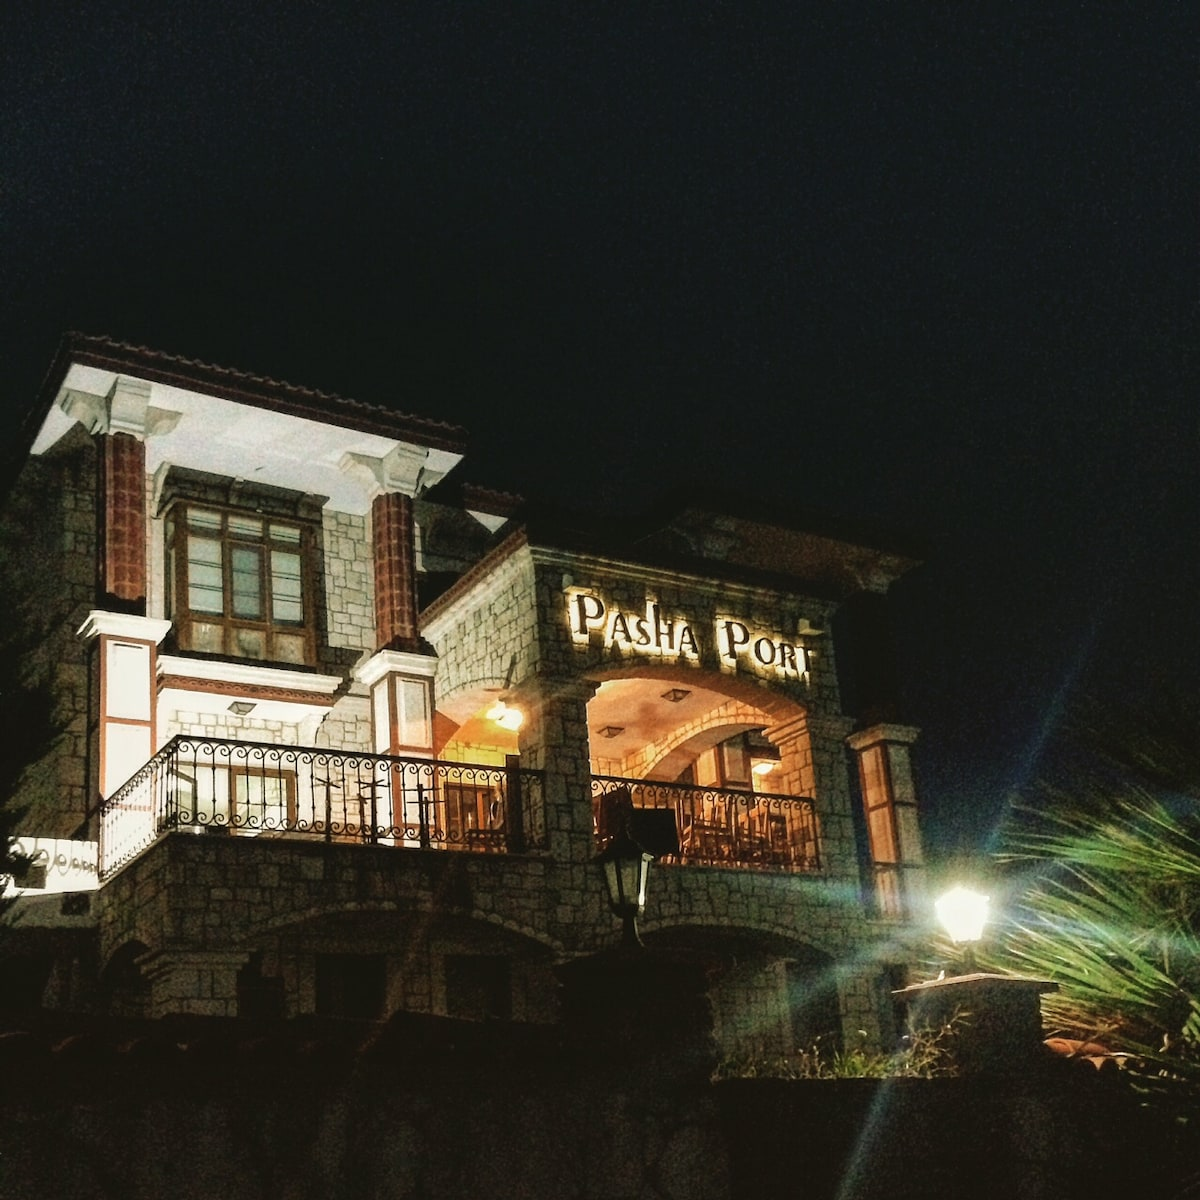 Pasha Port Hotel & Restaurant